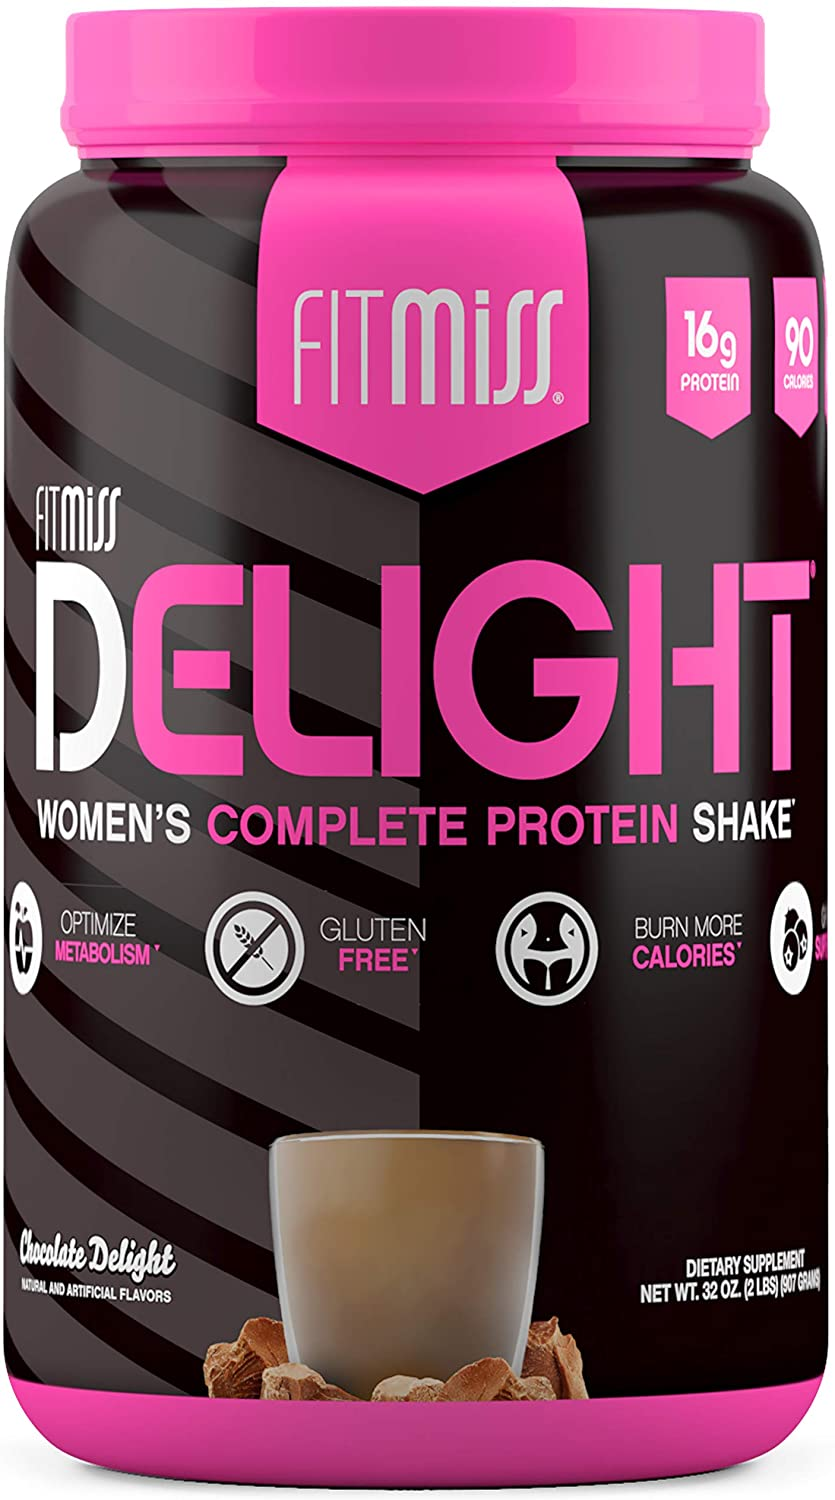 FitMiss Delight Protein Powder, Nutritional Shake, Chocolate Delight, 2 Pounds, 38 Servings: Health & Personal Care